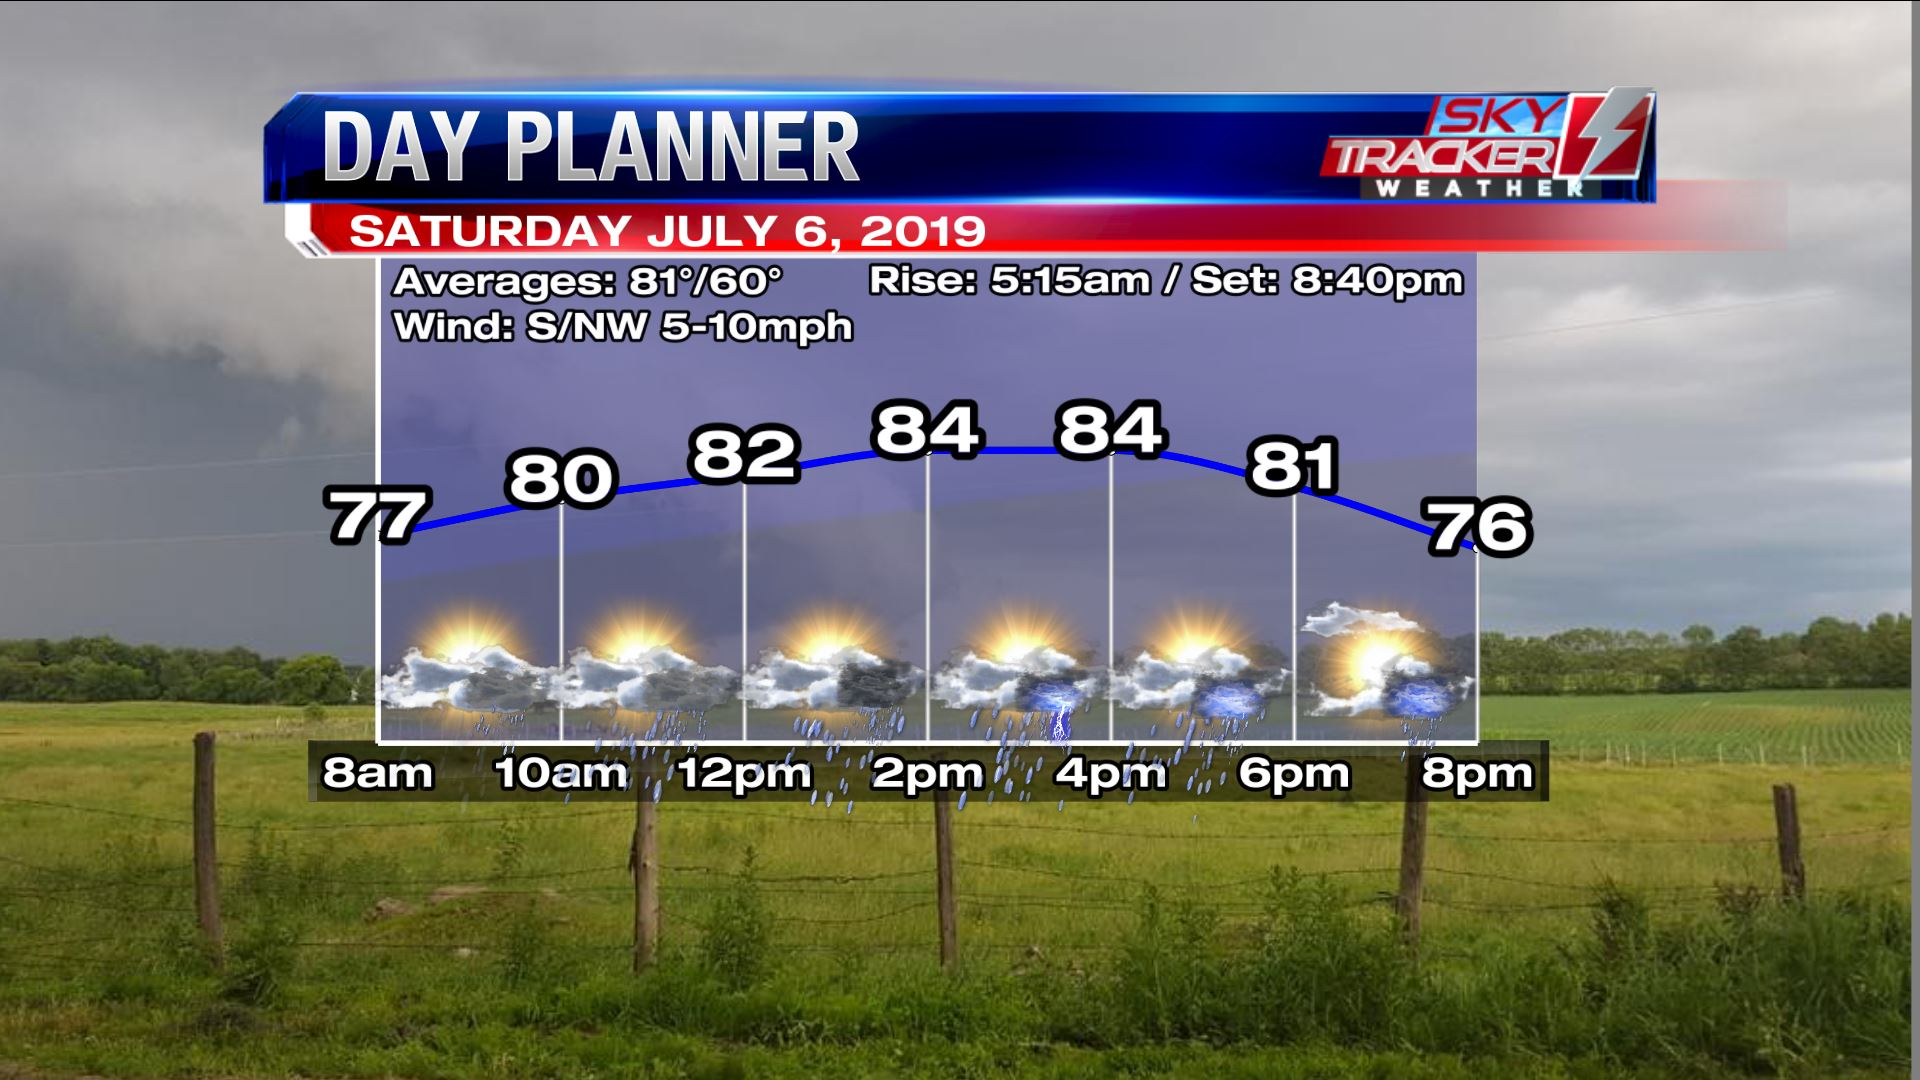 Planner for Saturday July 6 2019